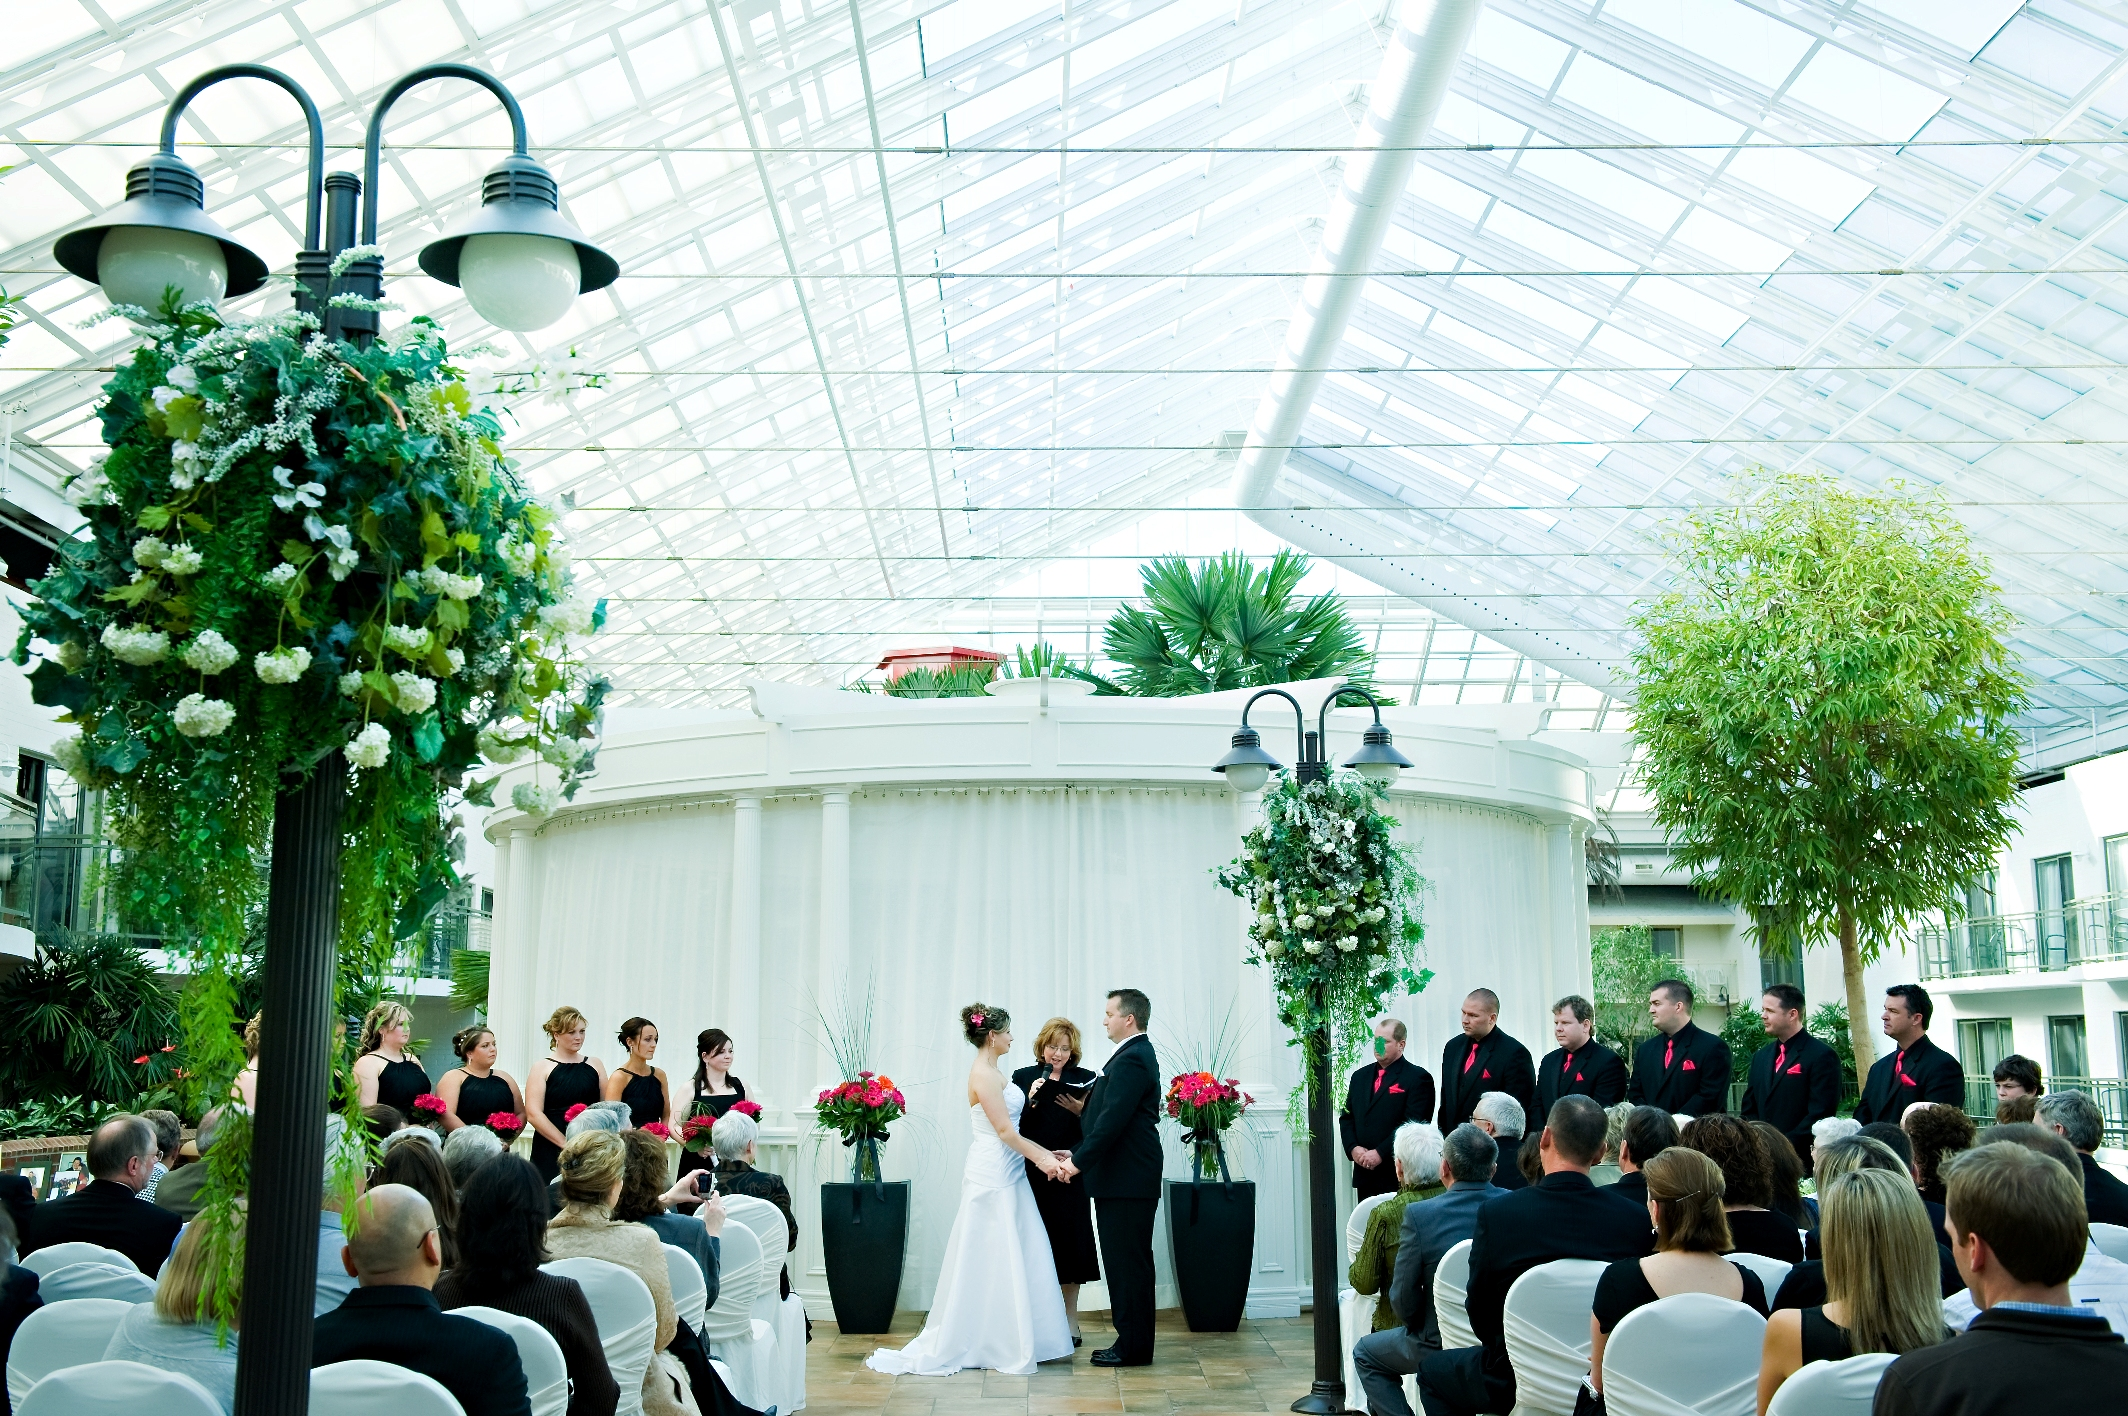 Wedding Taking Place Under Glass Ceiling Atrium At Lamplighter Inn